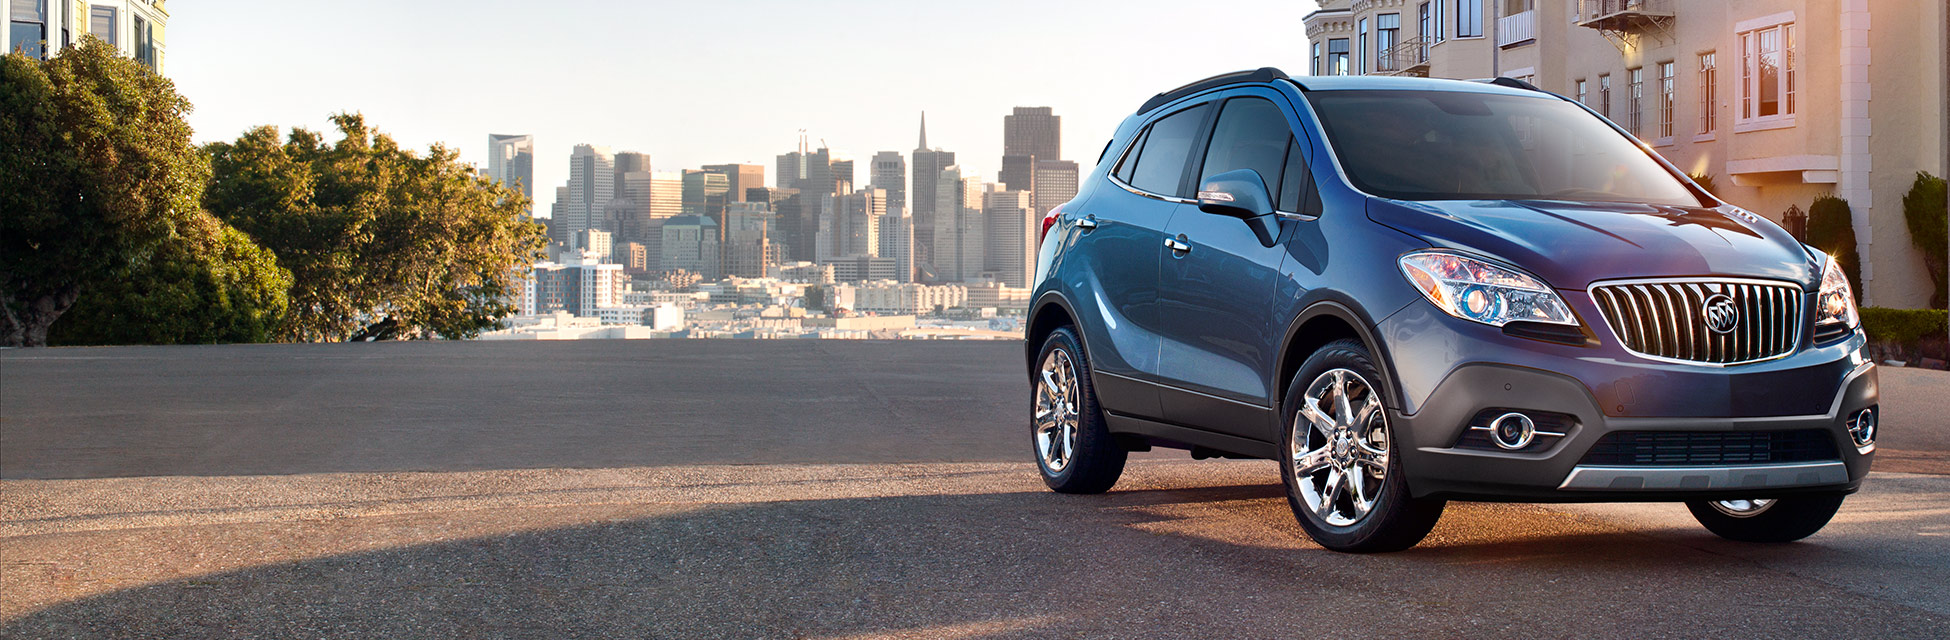 2016 Buick Encore Only $24,065